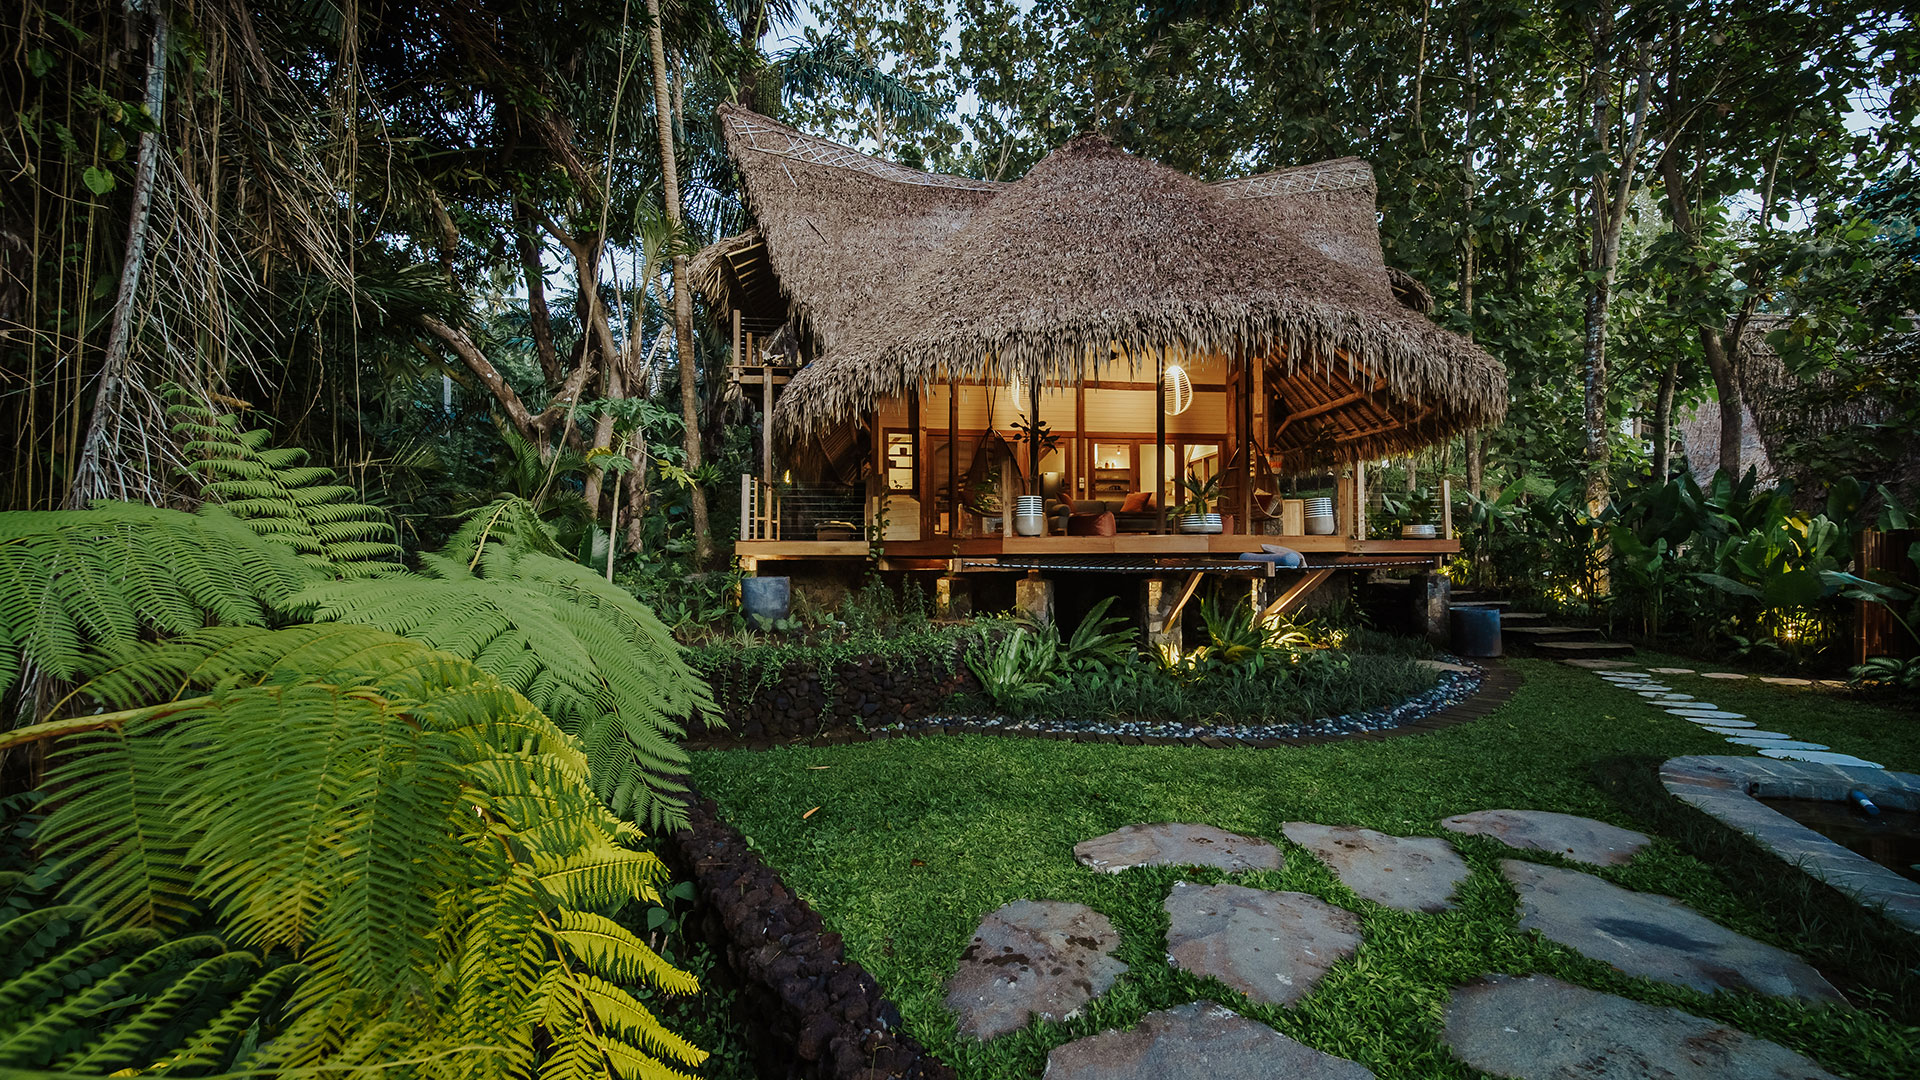 The concept is very inspiring, which is more plants than buildings. Large trees which are native to the area still maintained around the villas...